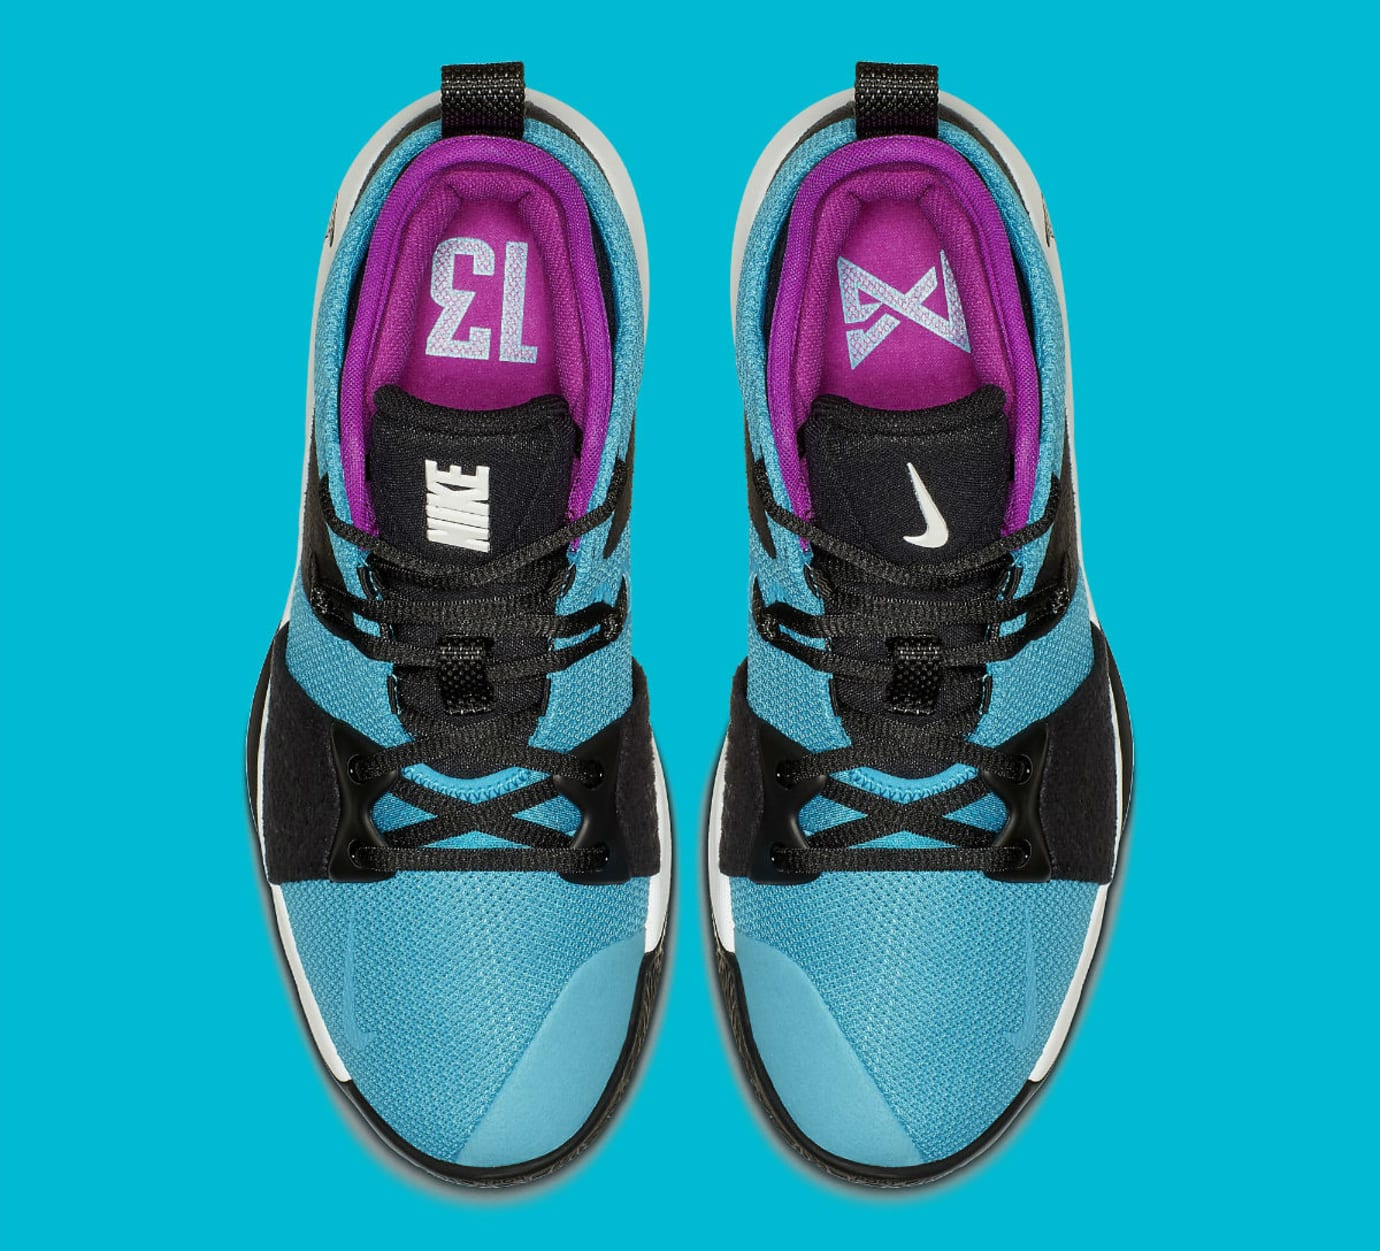 6b74379a387 Image via Nike Nike PG 2 South Beach Blue Lagoon Release Date AJ2039-402 Top